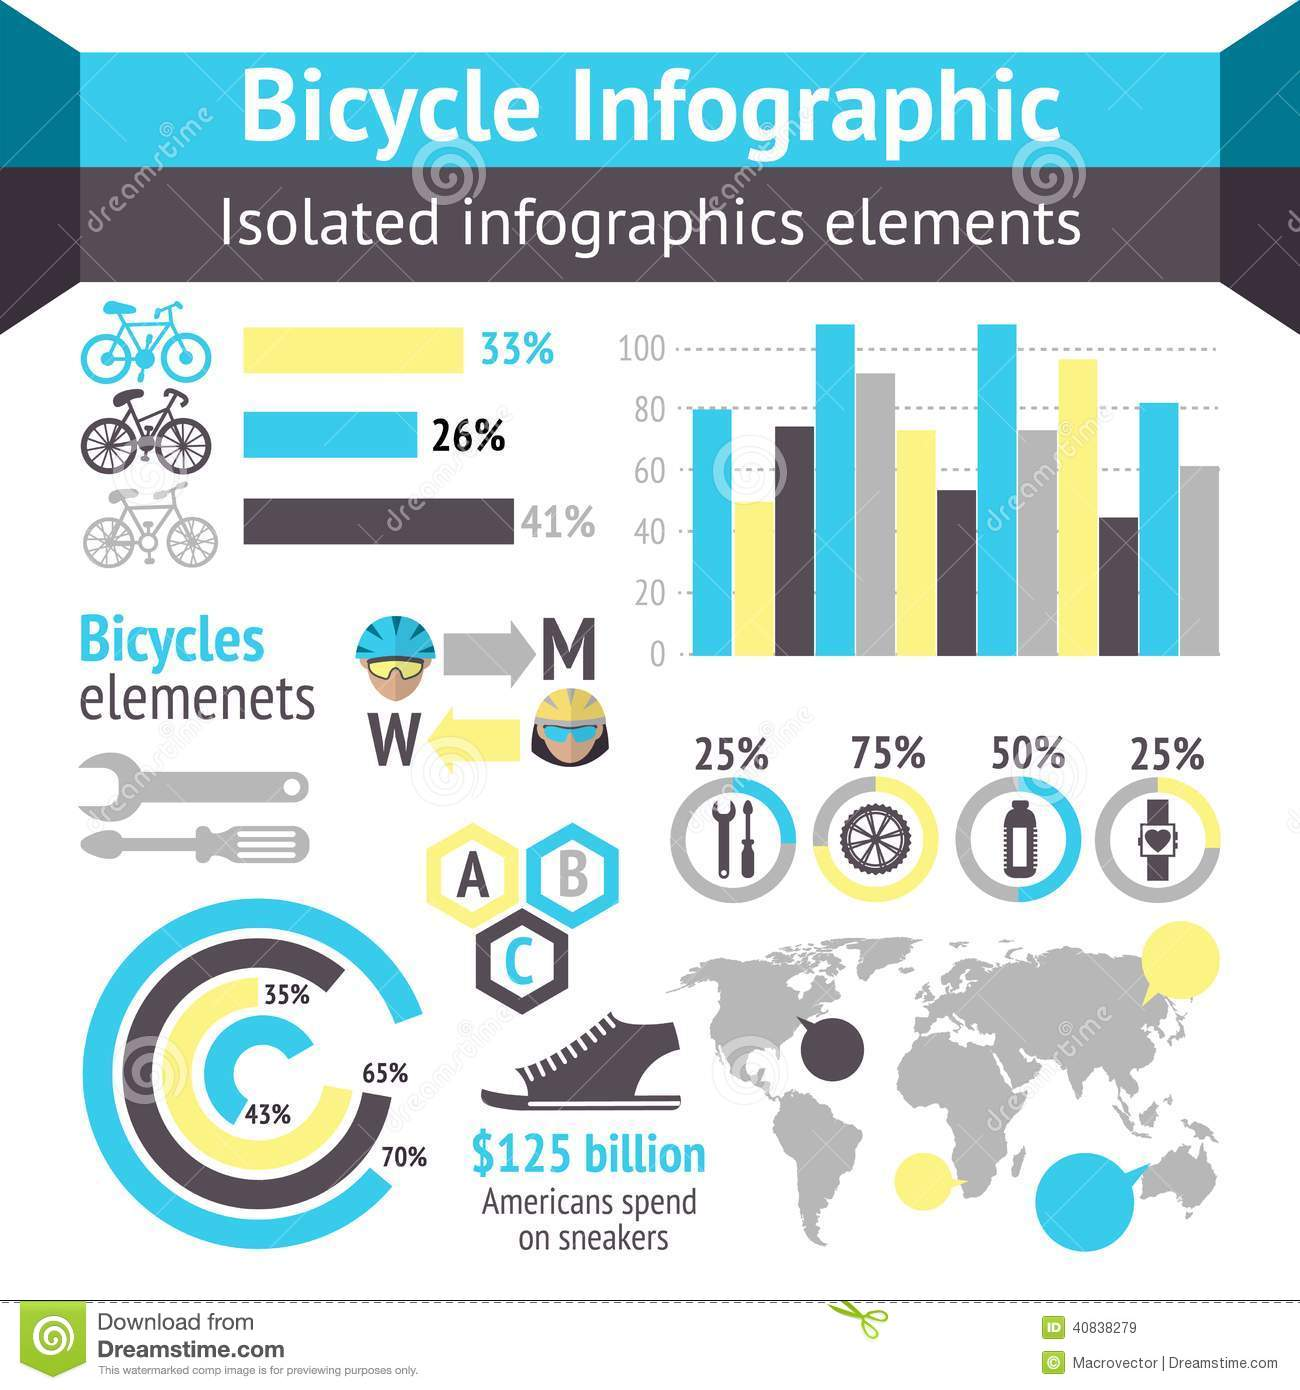 Bicycle Infographic Elements Stock Vector - Image: 40838279